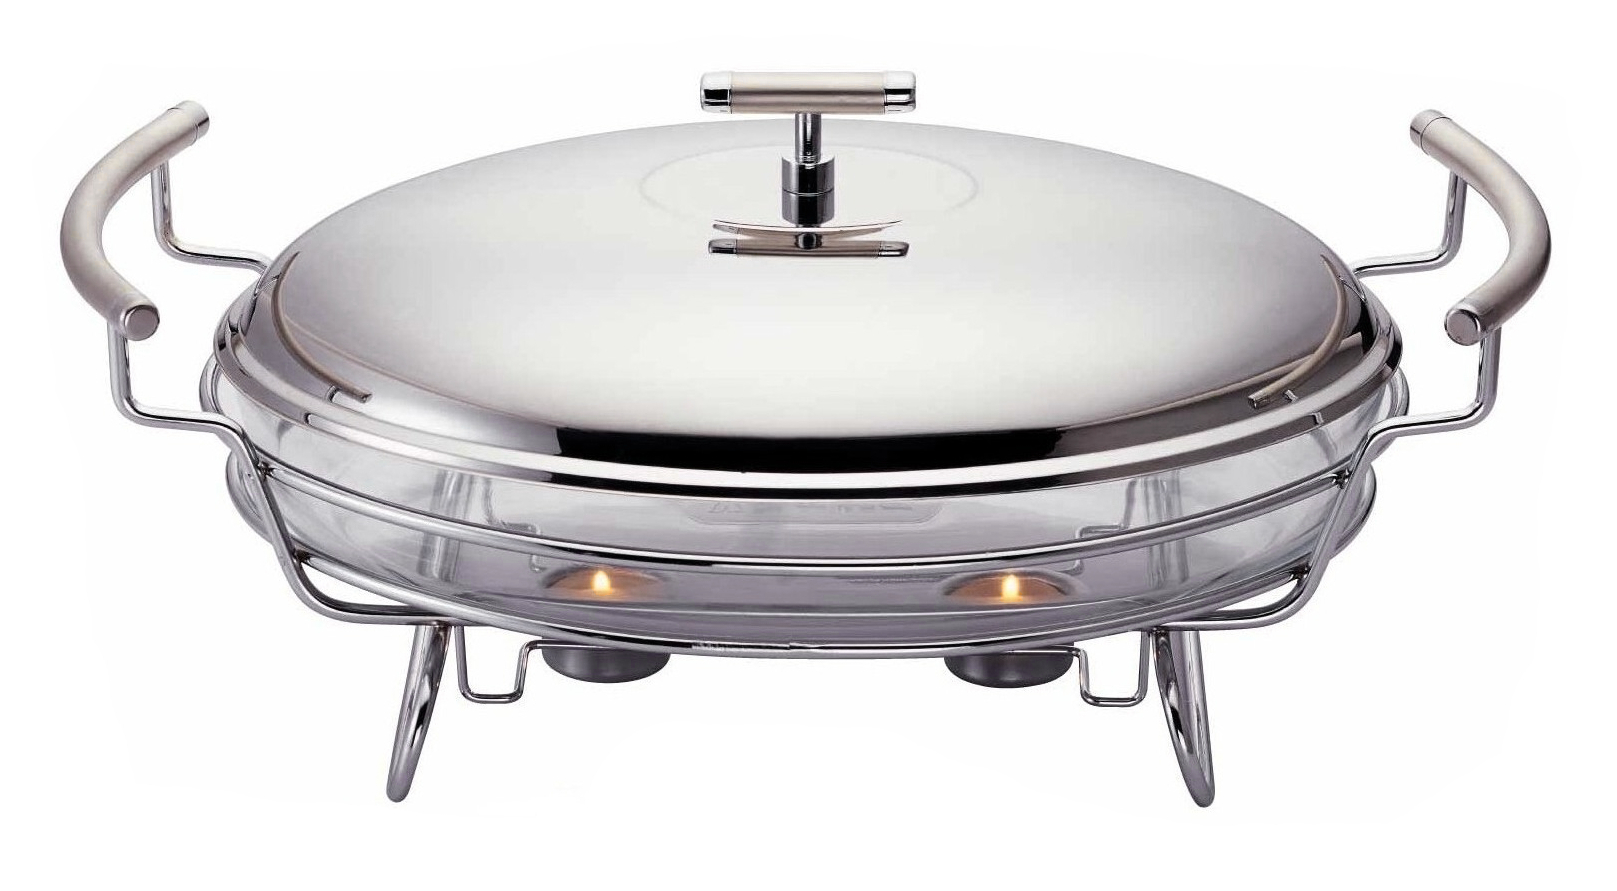 Single Oval Stainless Steel Buffet Warmer & Chafing Dish